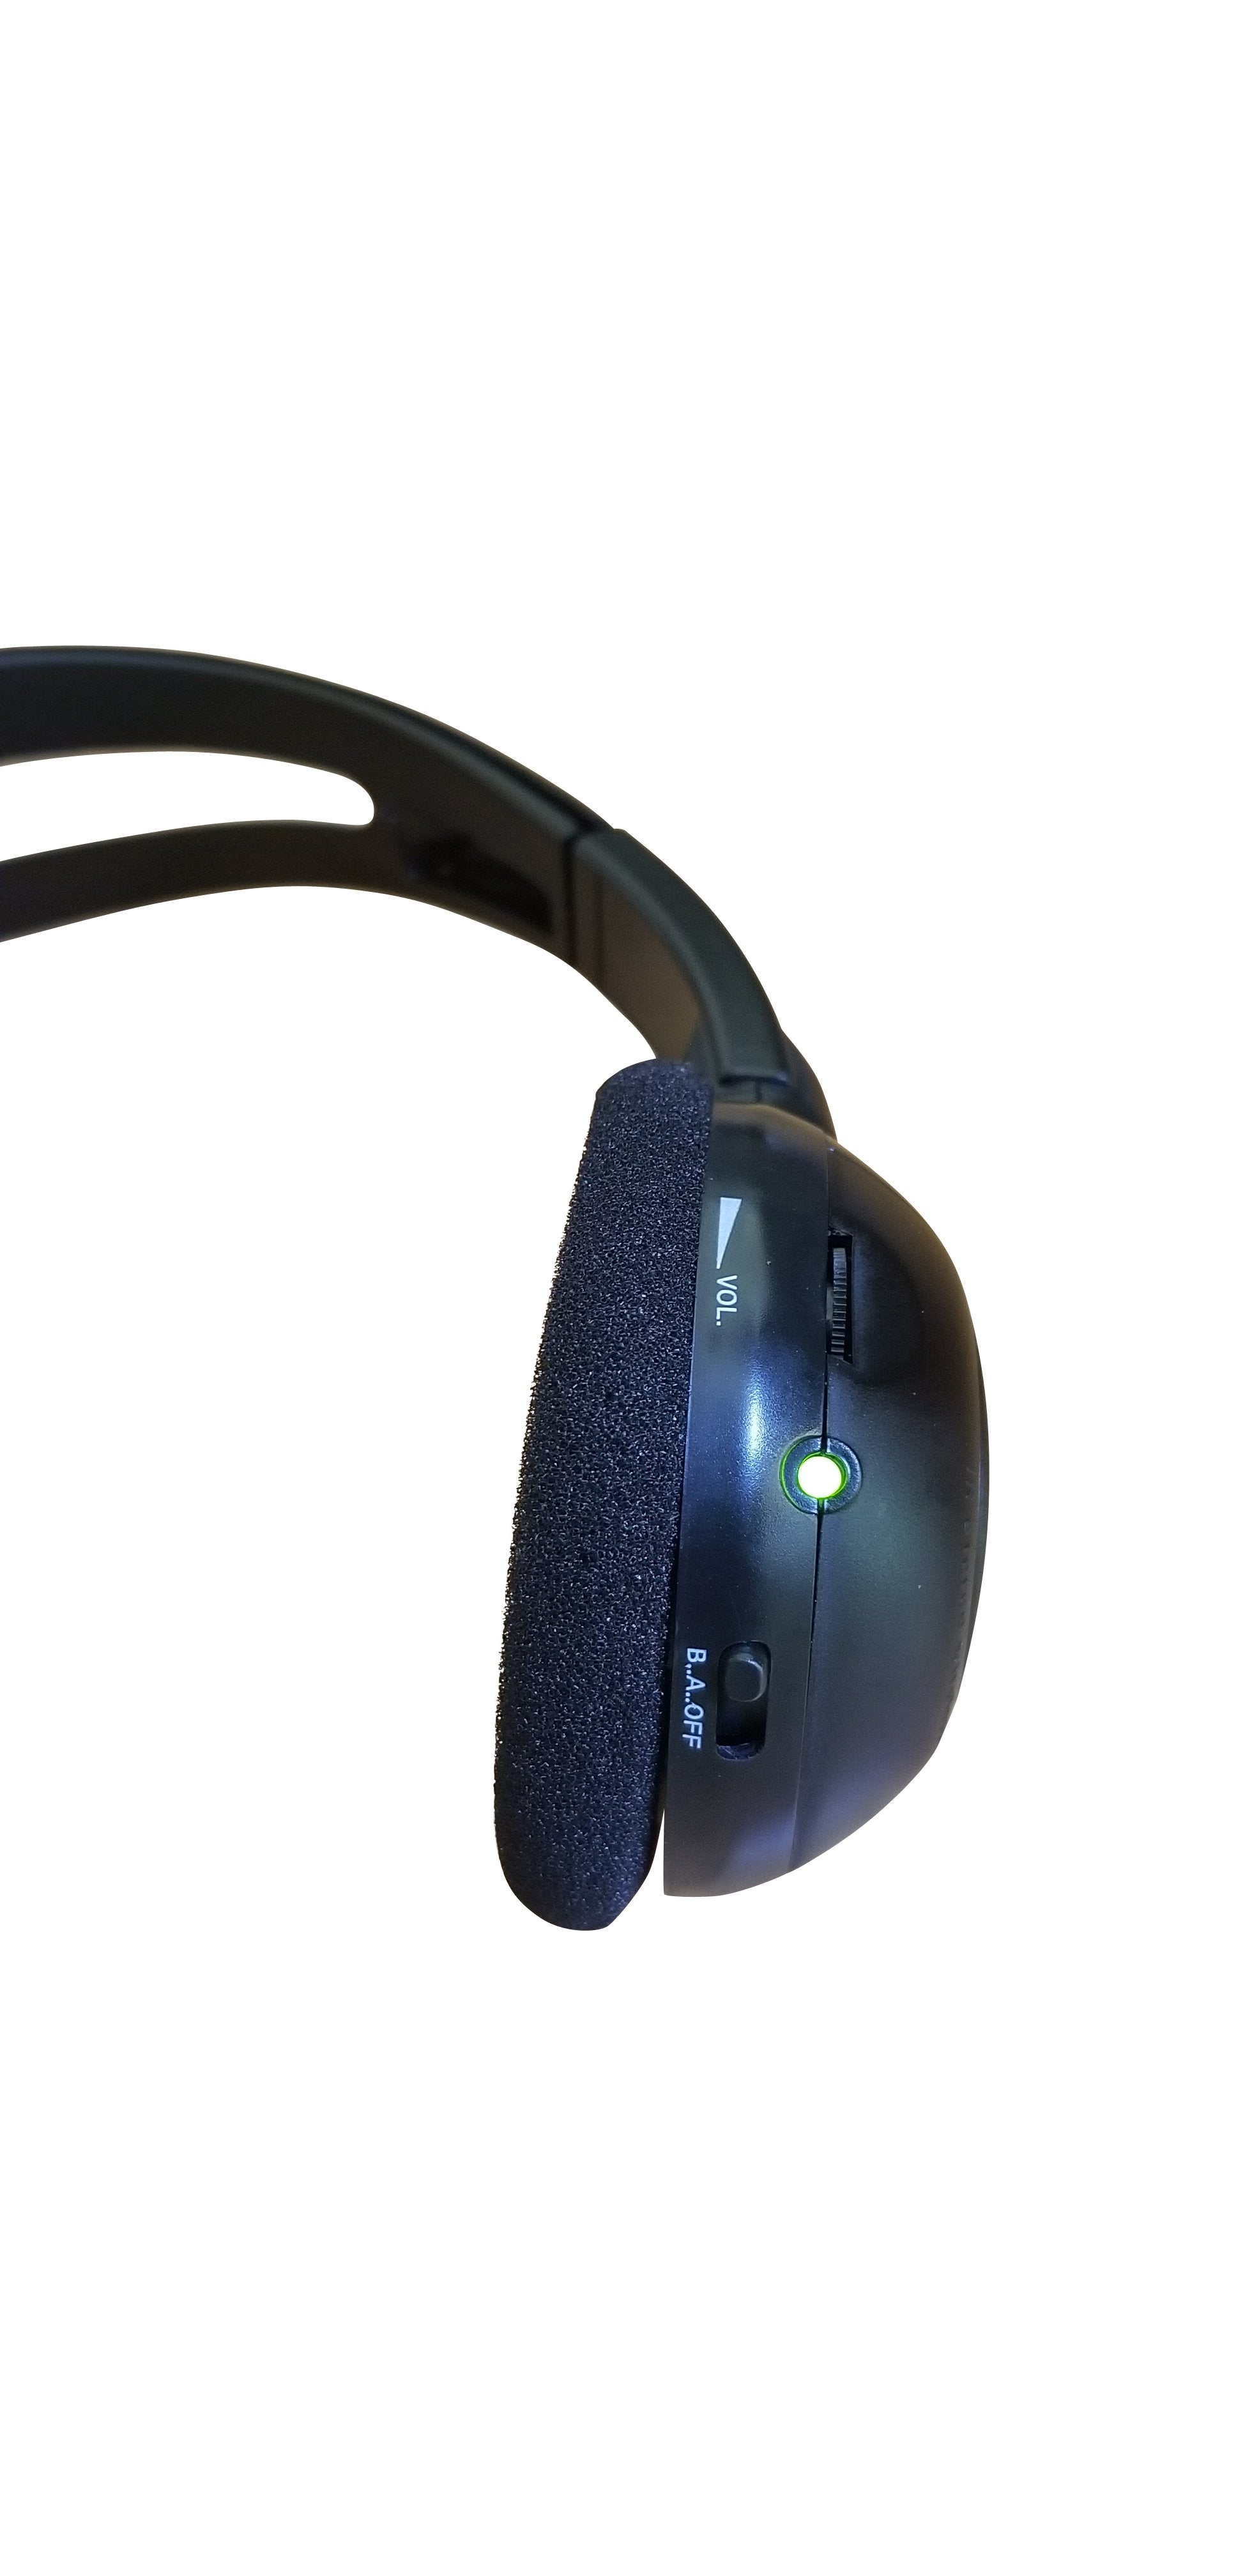 2013 VW-Volkswagen Tiguan Wireless DVD Headphone